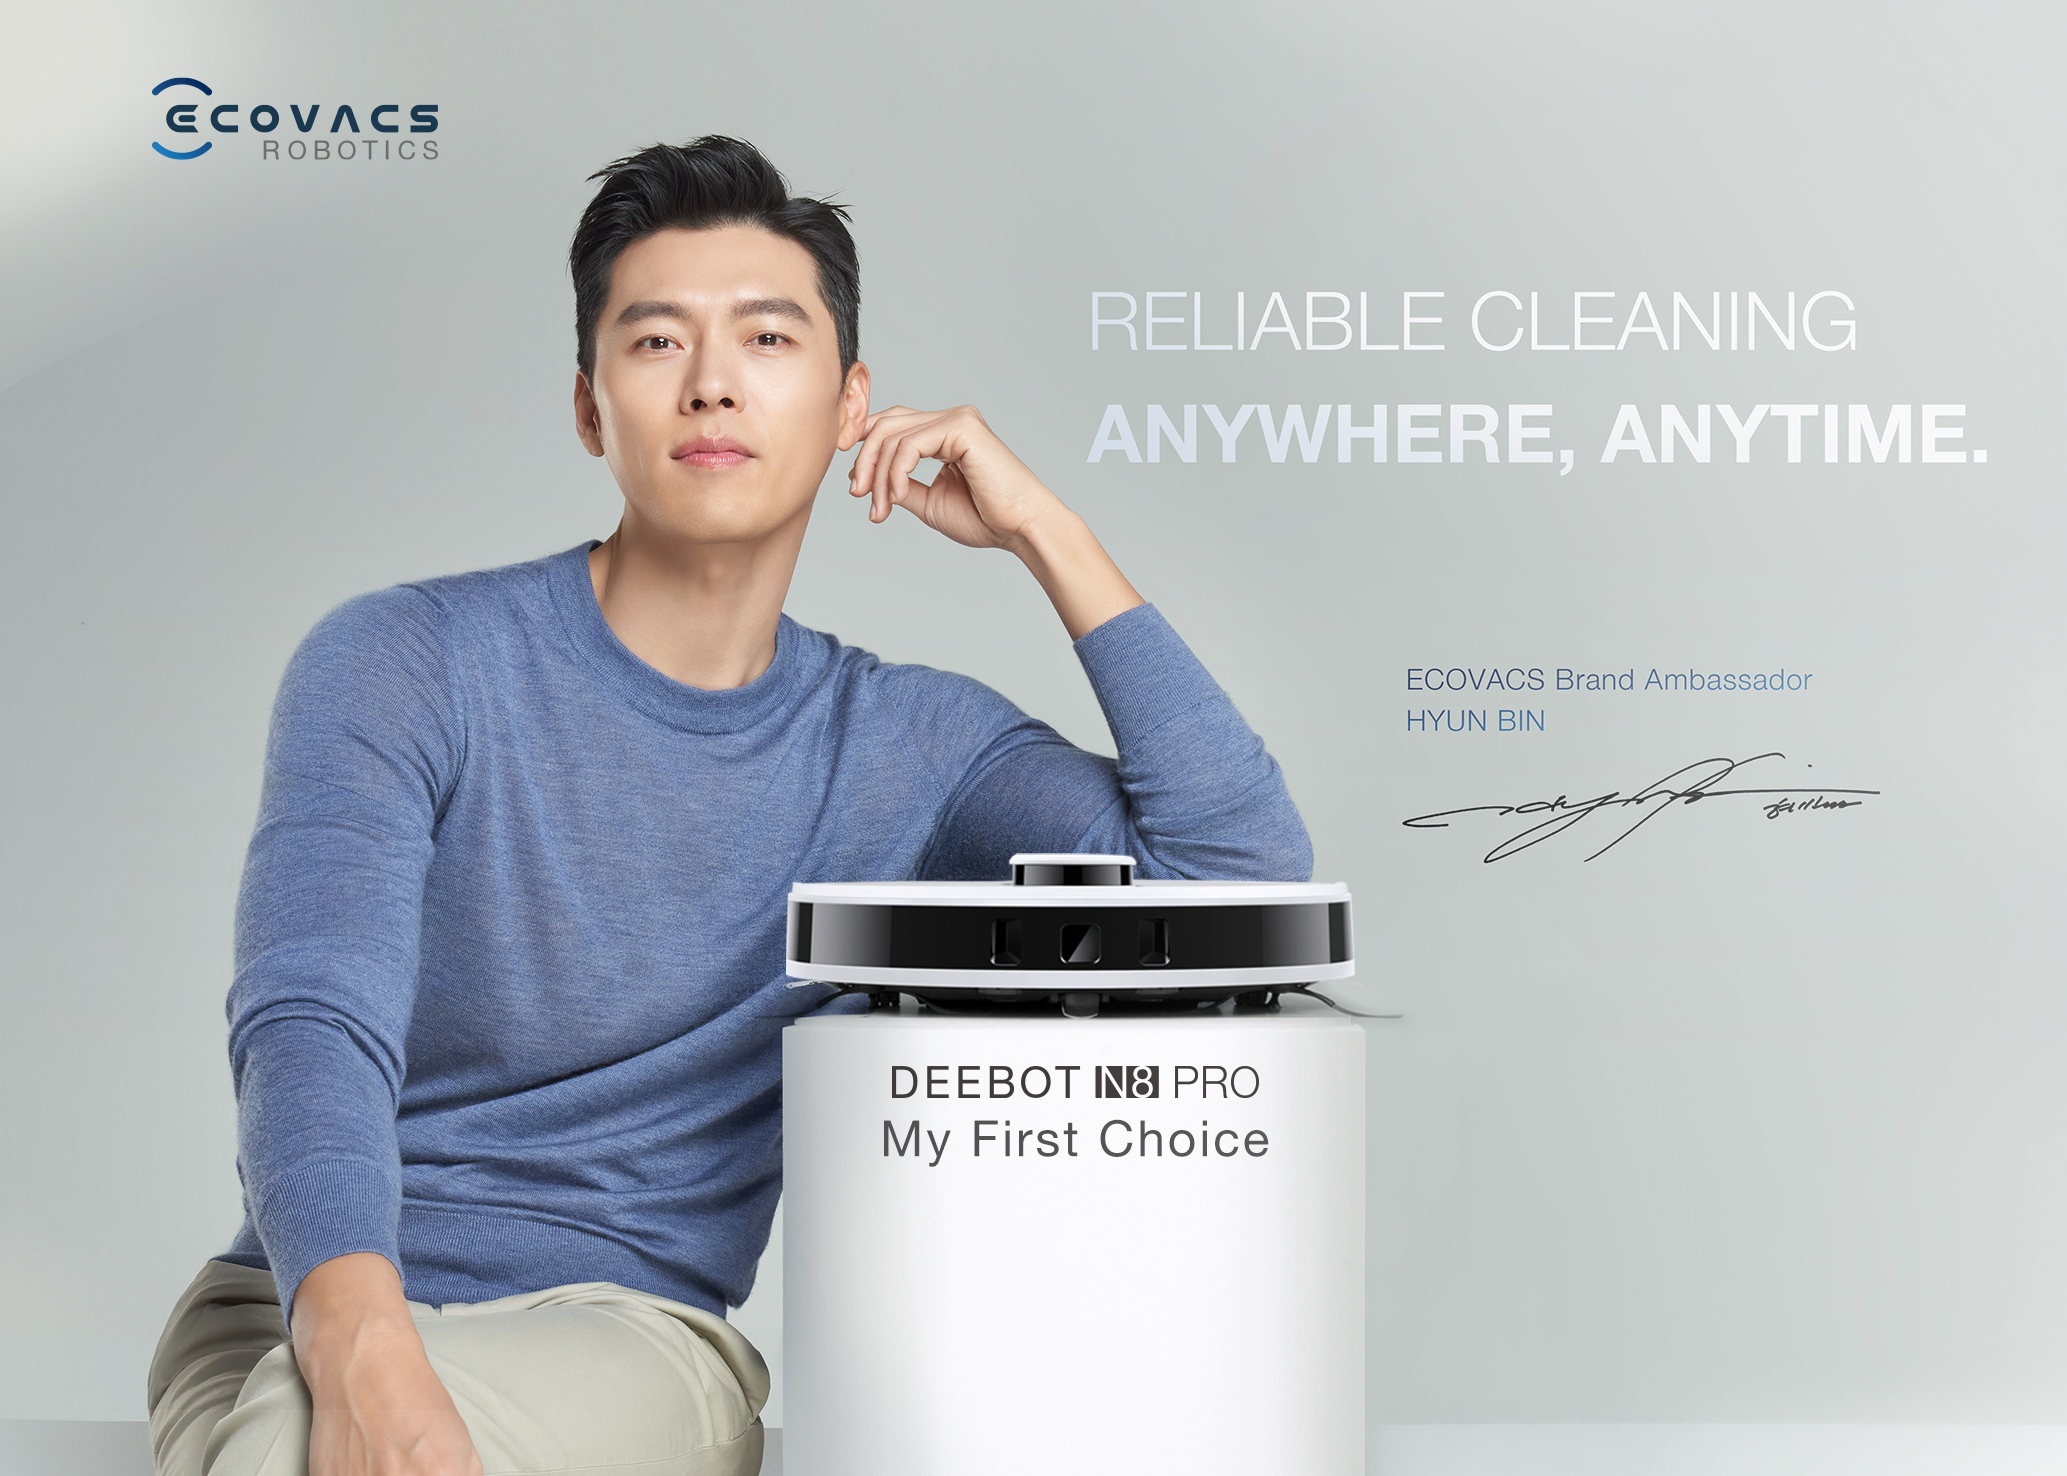 ECOVACS ROBOTICS Appoints Popular Korean Actor Hyun Bin as Brand Ambassador - Adding Excitement To Vietnam Market